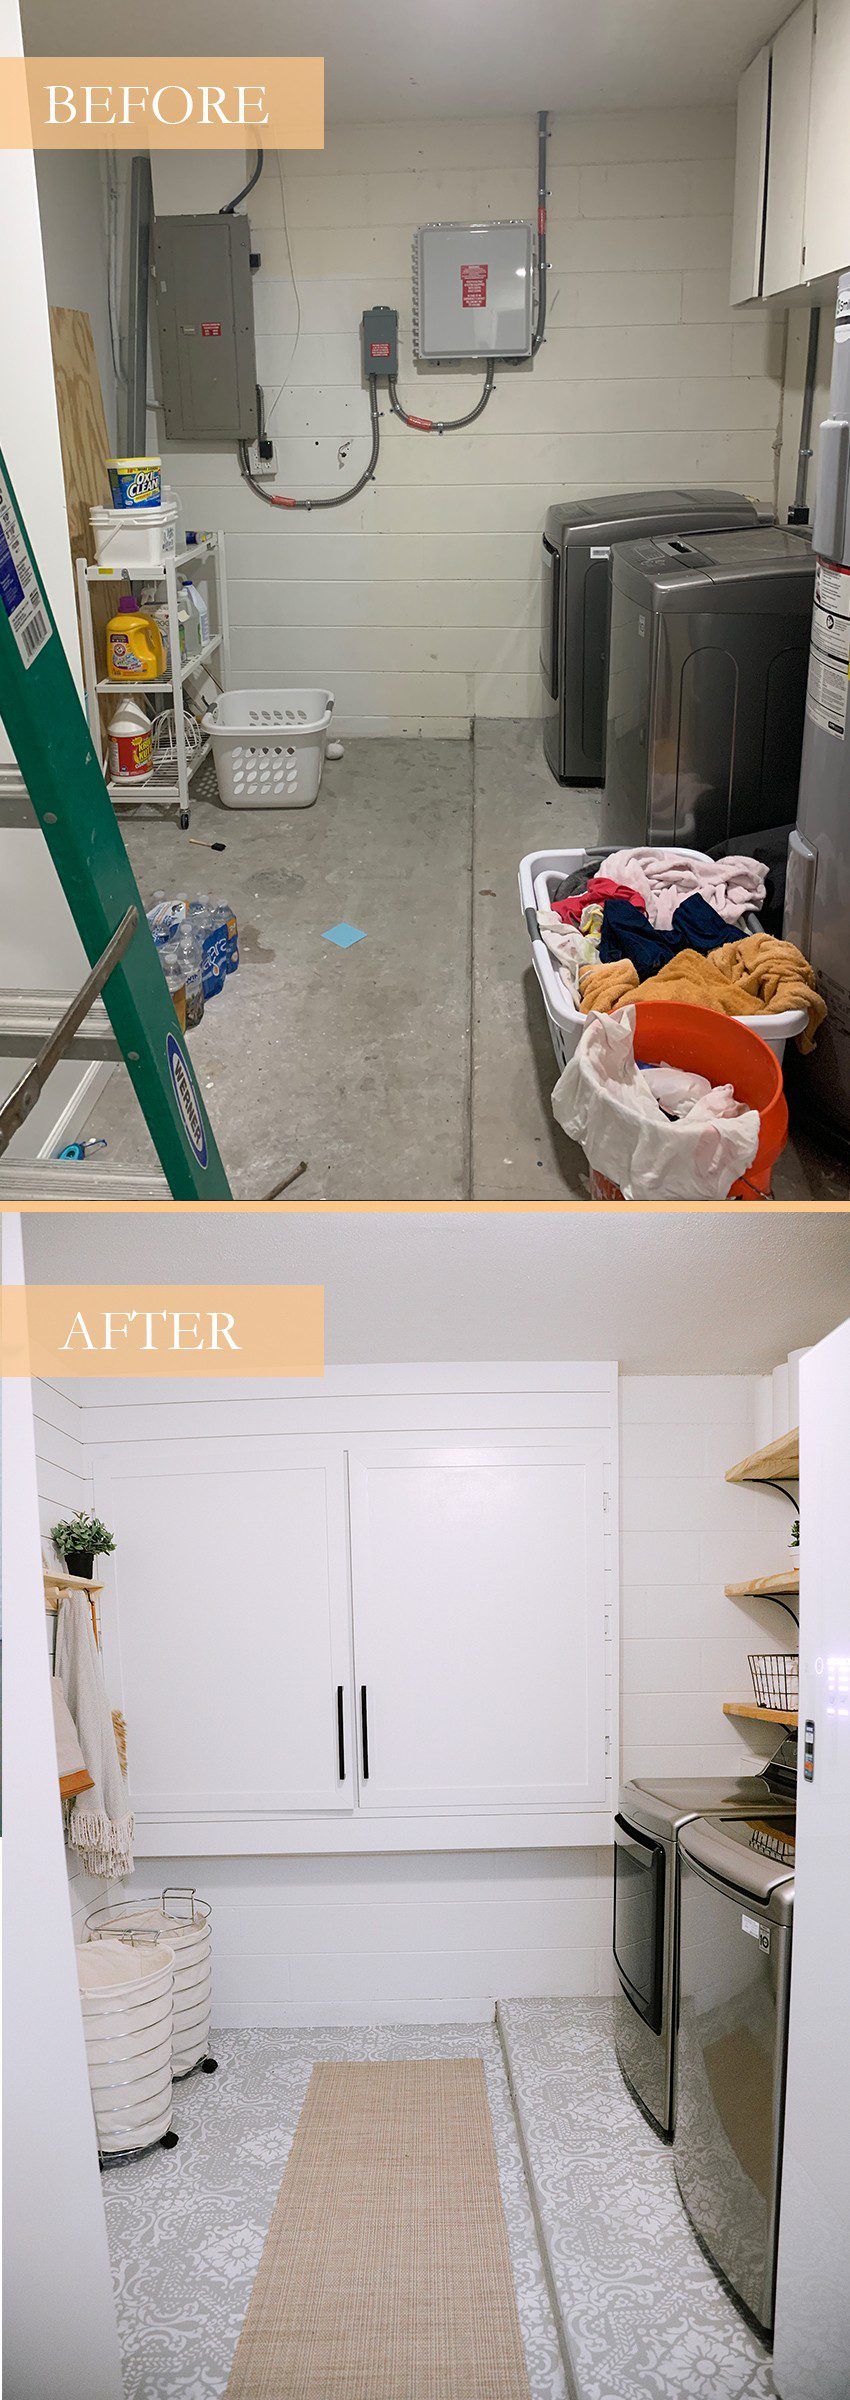 How We Designed a Family Friendly Laundry Room in our Garage - The Reveal! | Laundry Room DIY: How to Paint a Cement Floor with Stencils by popular home decor blog, Fresh Mommy: before and after images of a laundry room remodel.